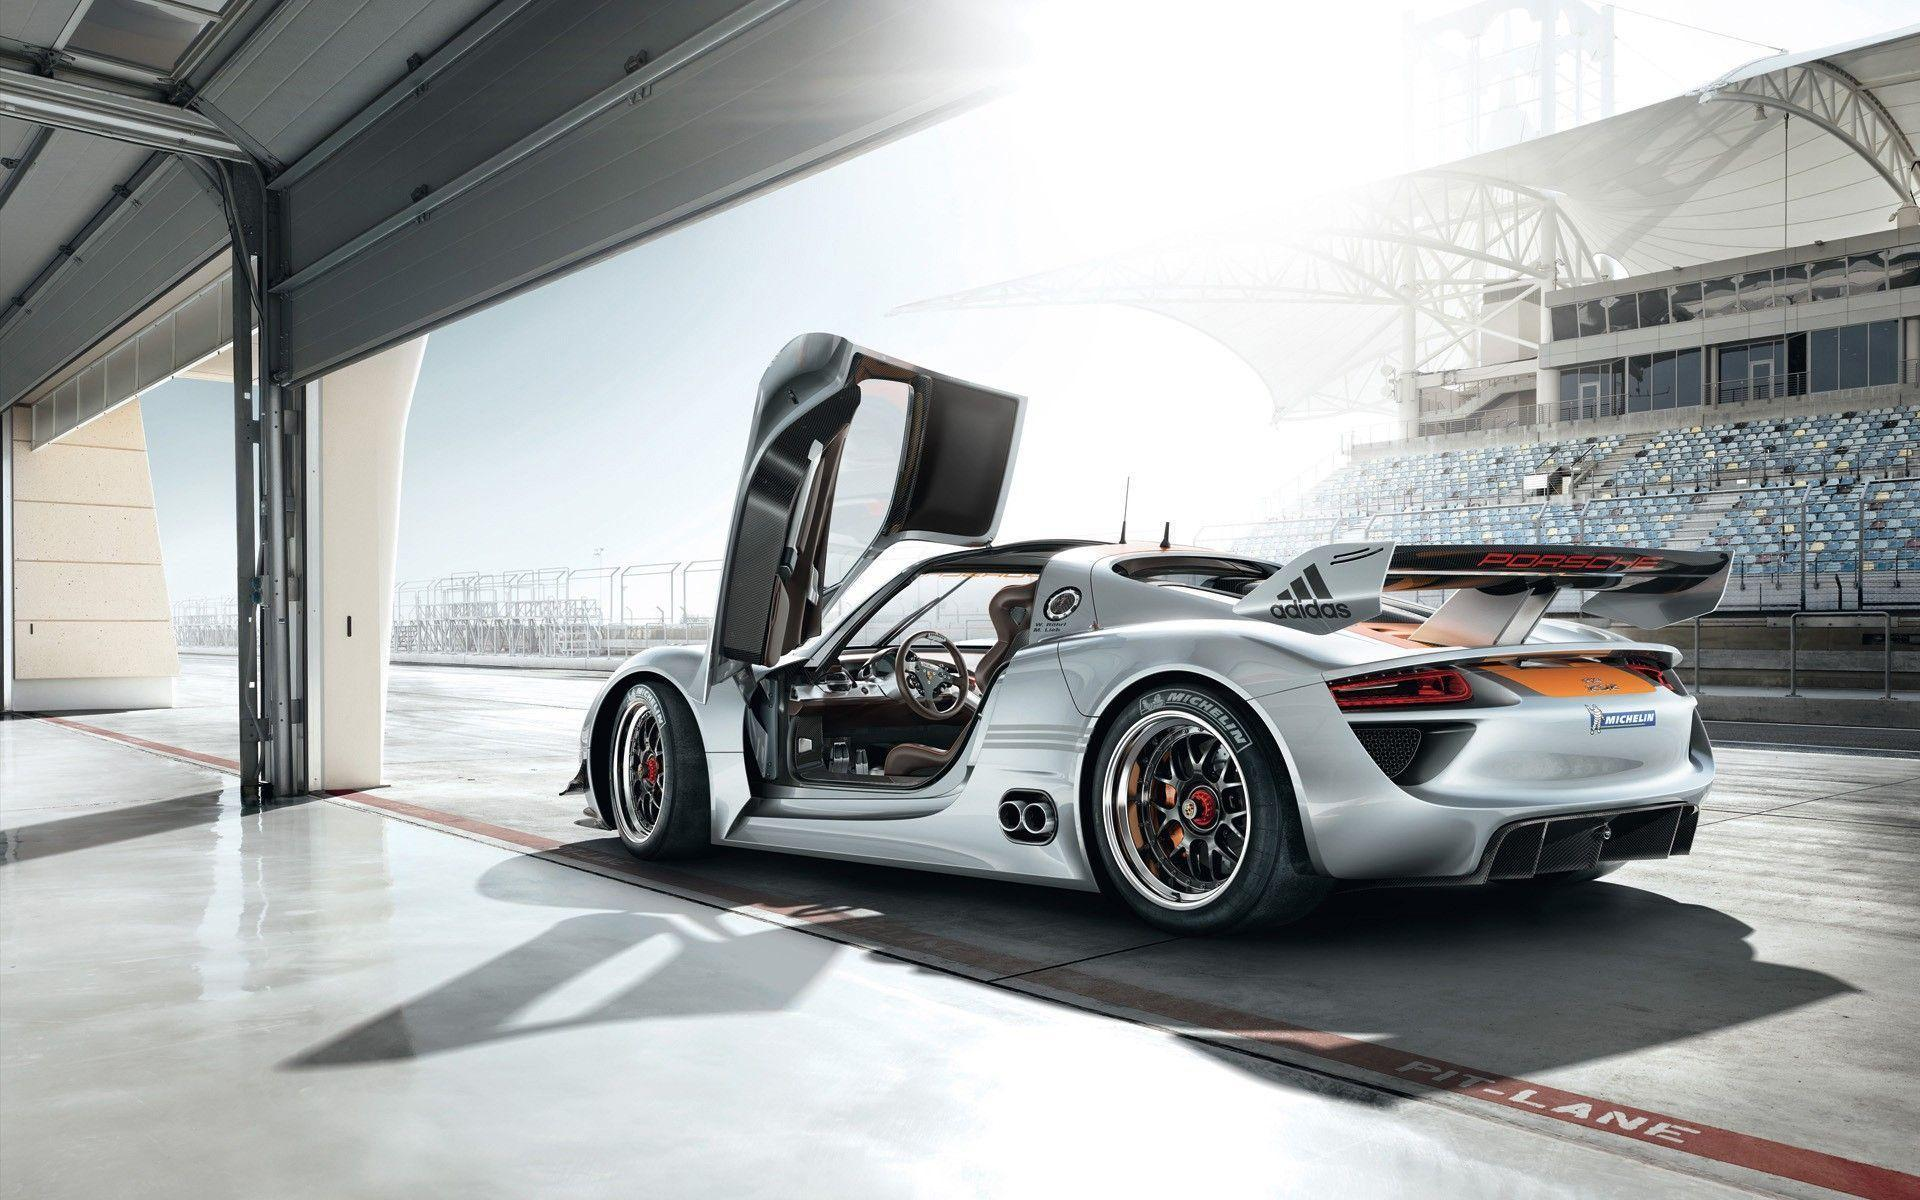 Porsche Super Car Wallpapers | HD Wallpapers